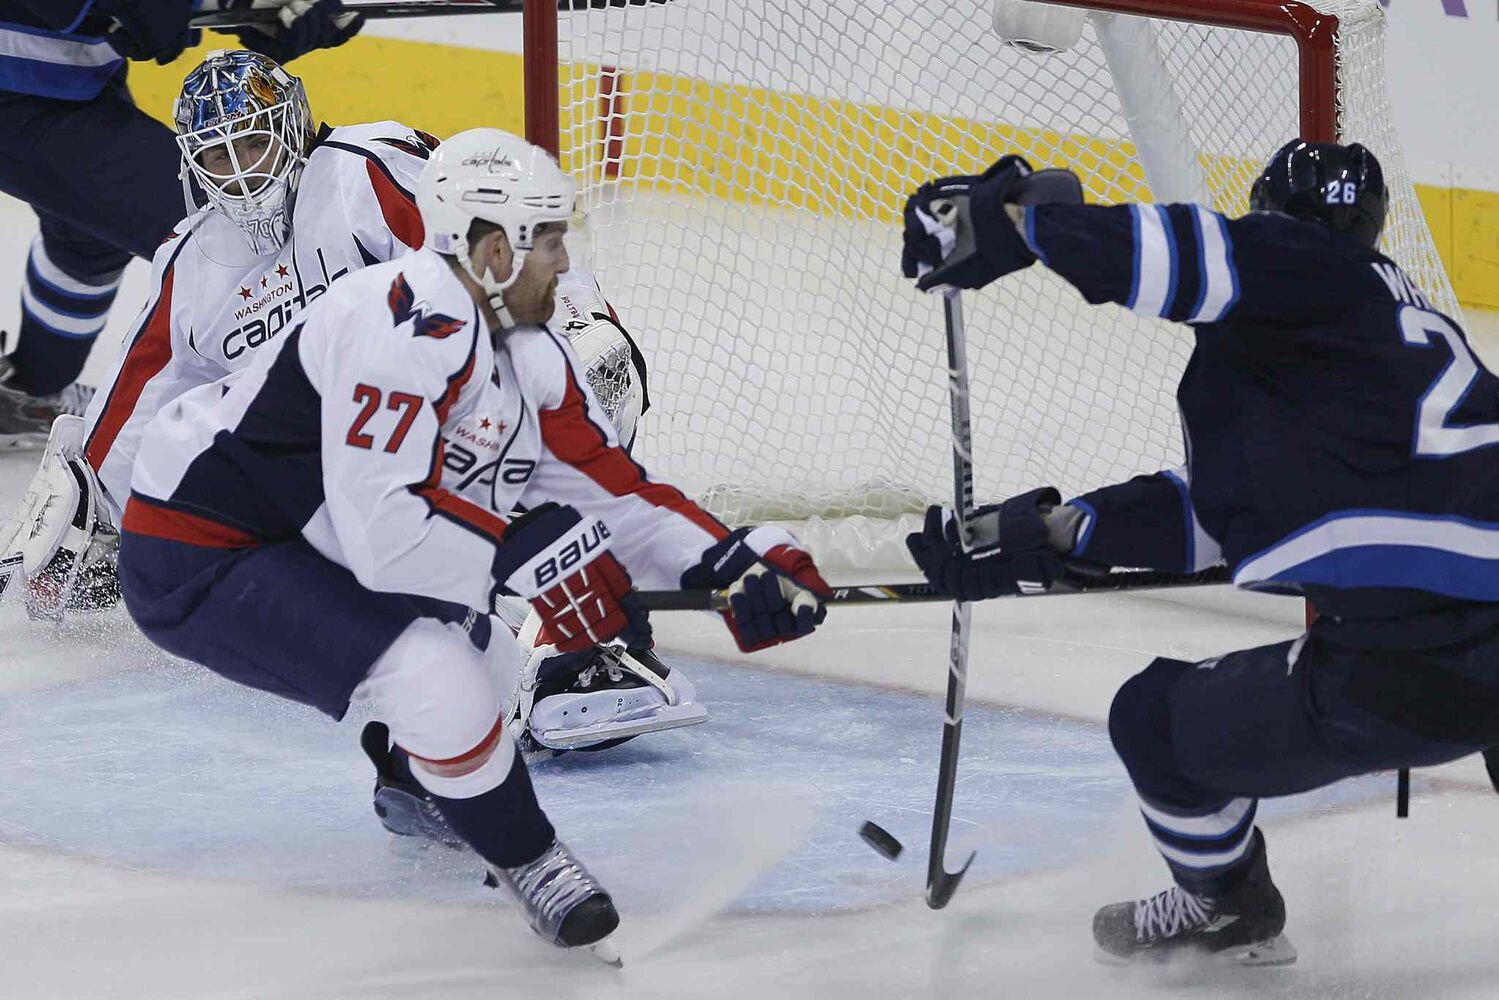 Winnipeg Jets forward Blake Wheeler misses this opportunity to score on Washington Capitals goaltender Braden Holtby as Capitals defenceman Karl Alzner defends.